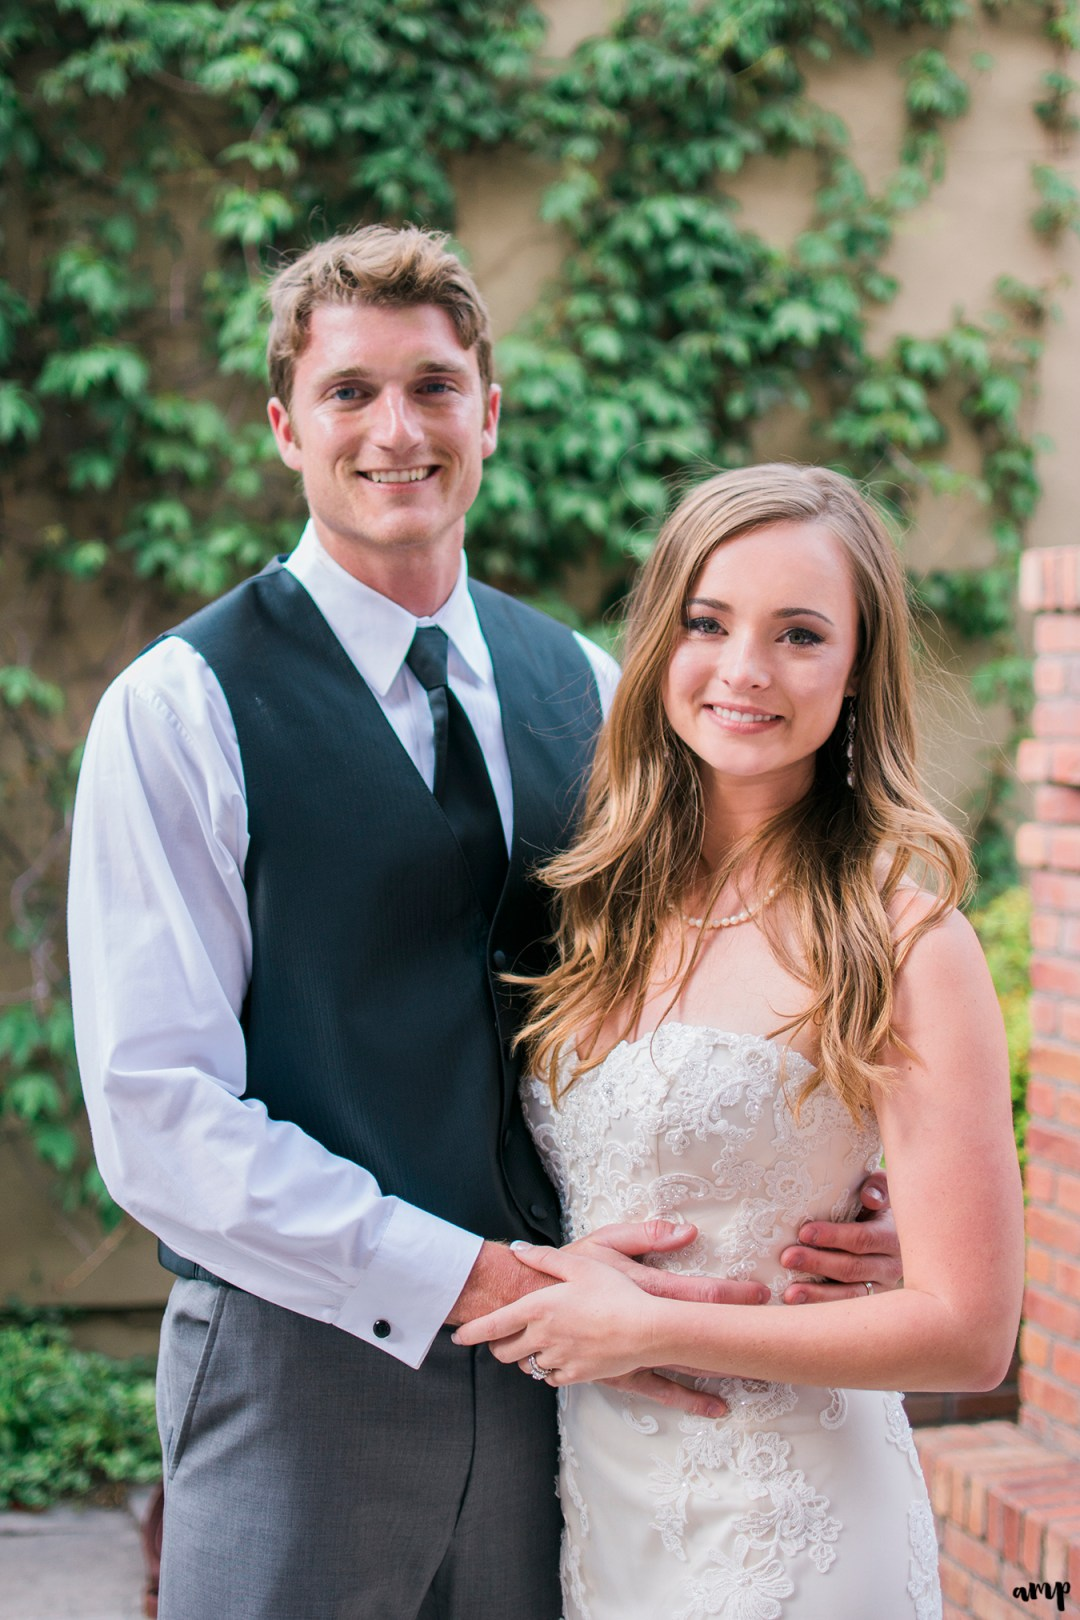 Bride and Groom | Ouray Wedding at the Amphitheater and Beaumont Hotel